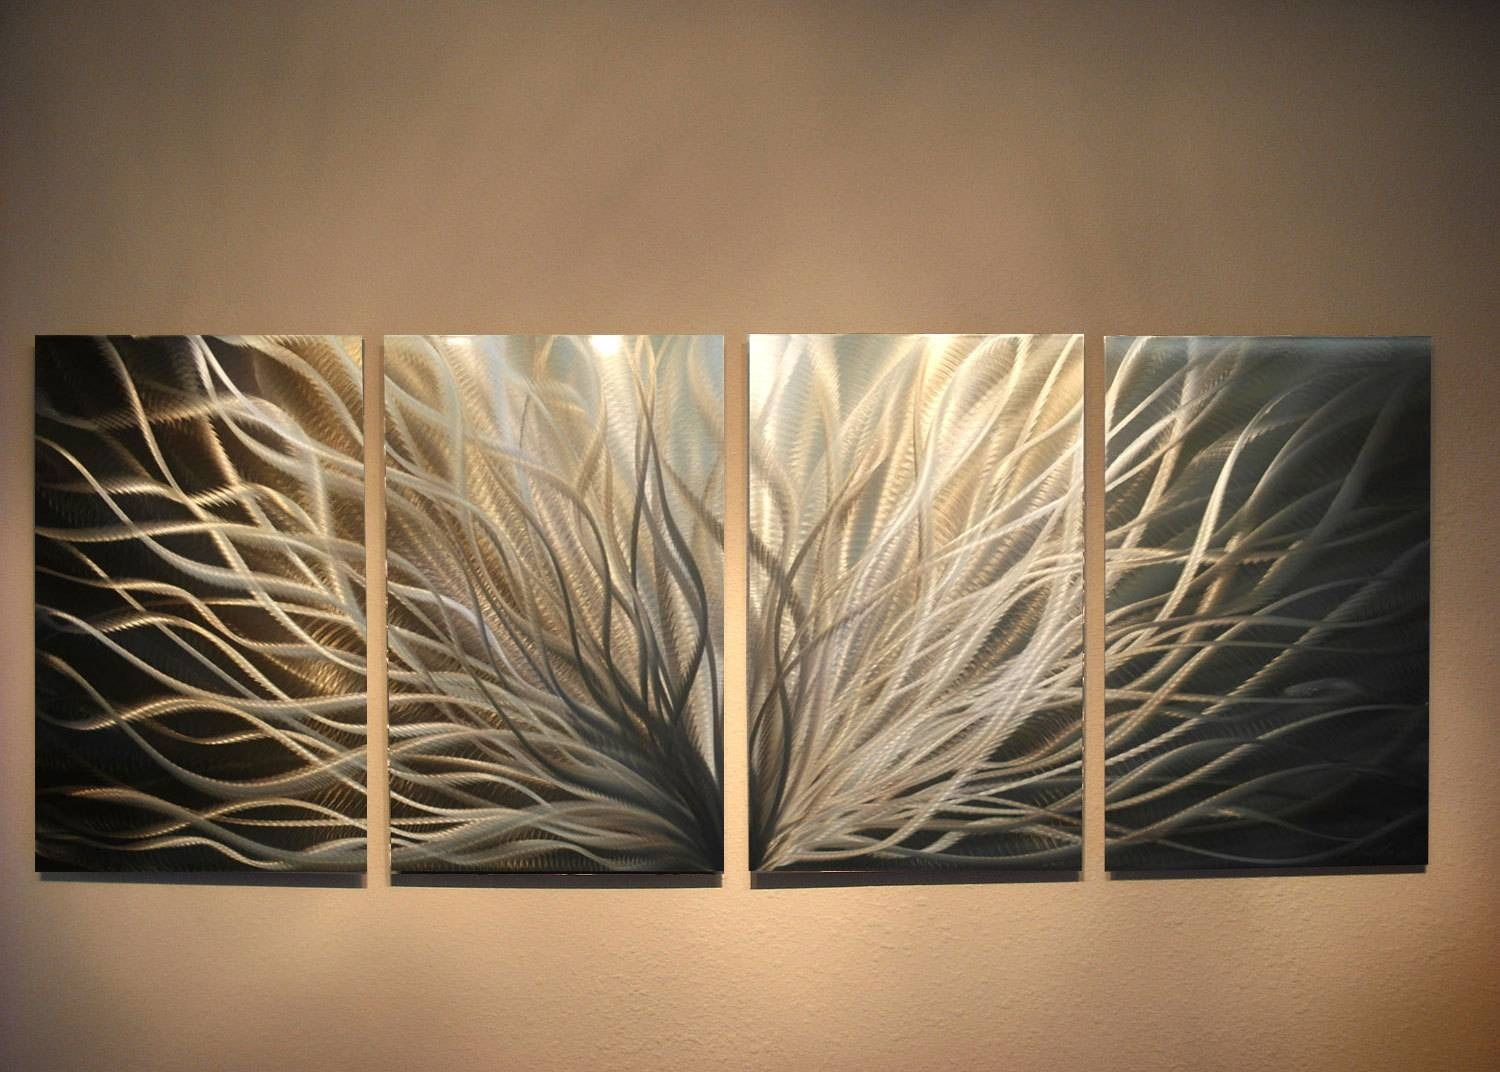 Metal Art Wall Art Decor Aluminum Abstract Contemporary Modern For Most Popular Modern Abstract Metal Wall Art (View 10 of 20)